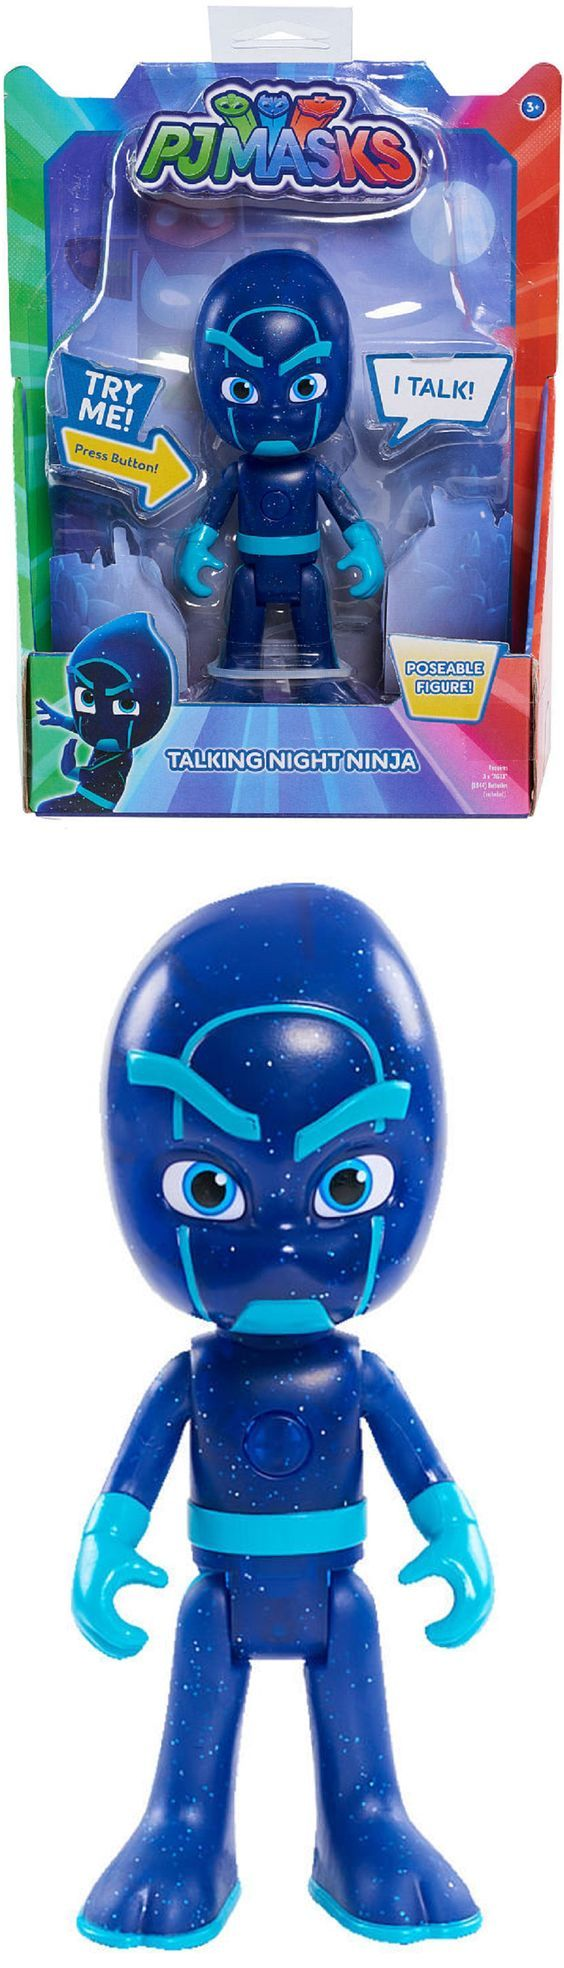 Christmas 2017 gift for our beautiful granddaughter and handsome grandson.  PJ Masks Deluxe 6-inch Talking Night Ninja.  The kids love this along with the talking Owelette, Gekko, Cat Boy, Romeo, and Luna Girl we also got them for Christmas.